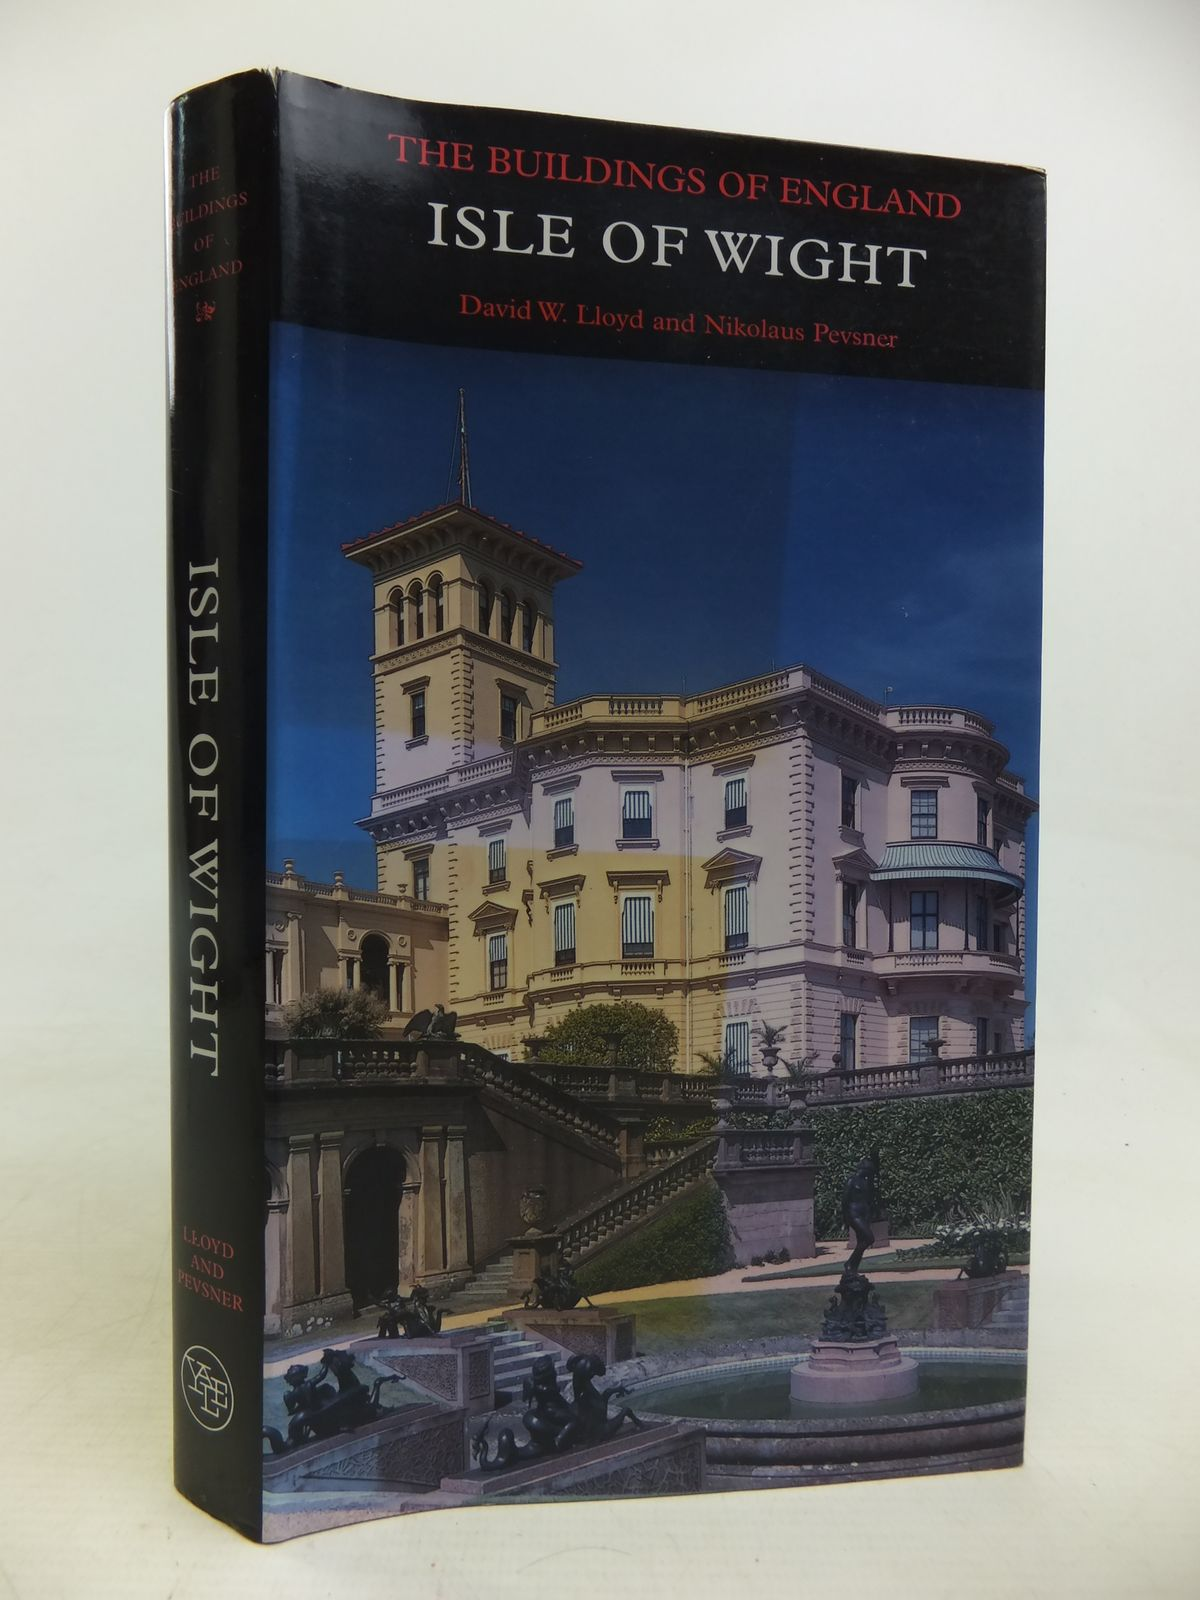 Photo of THE ISLE OF WIGHT (BUILDINGS OF ENGLAND)